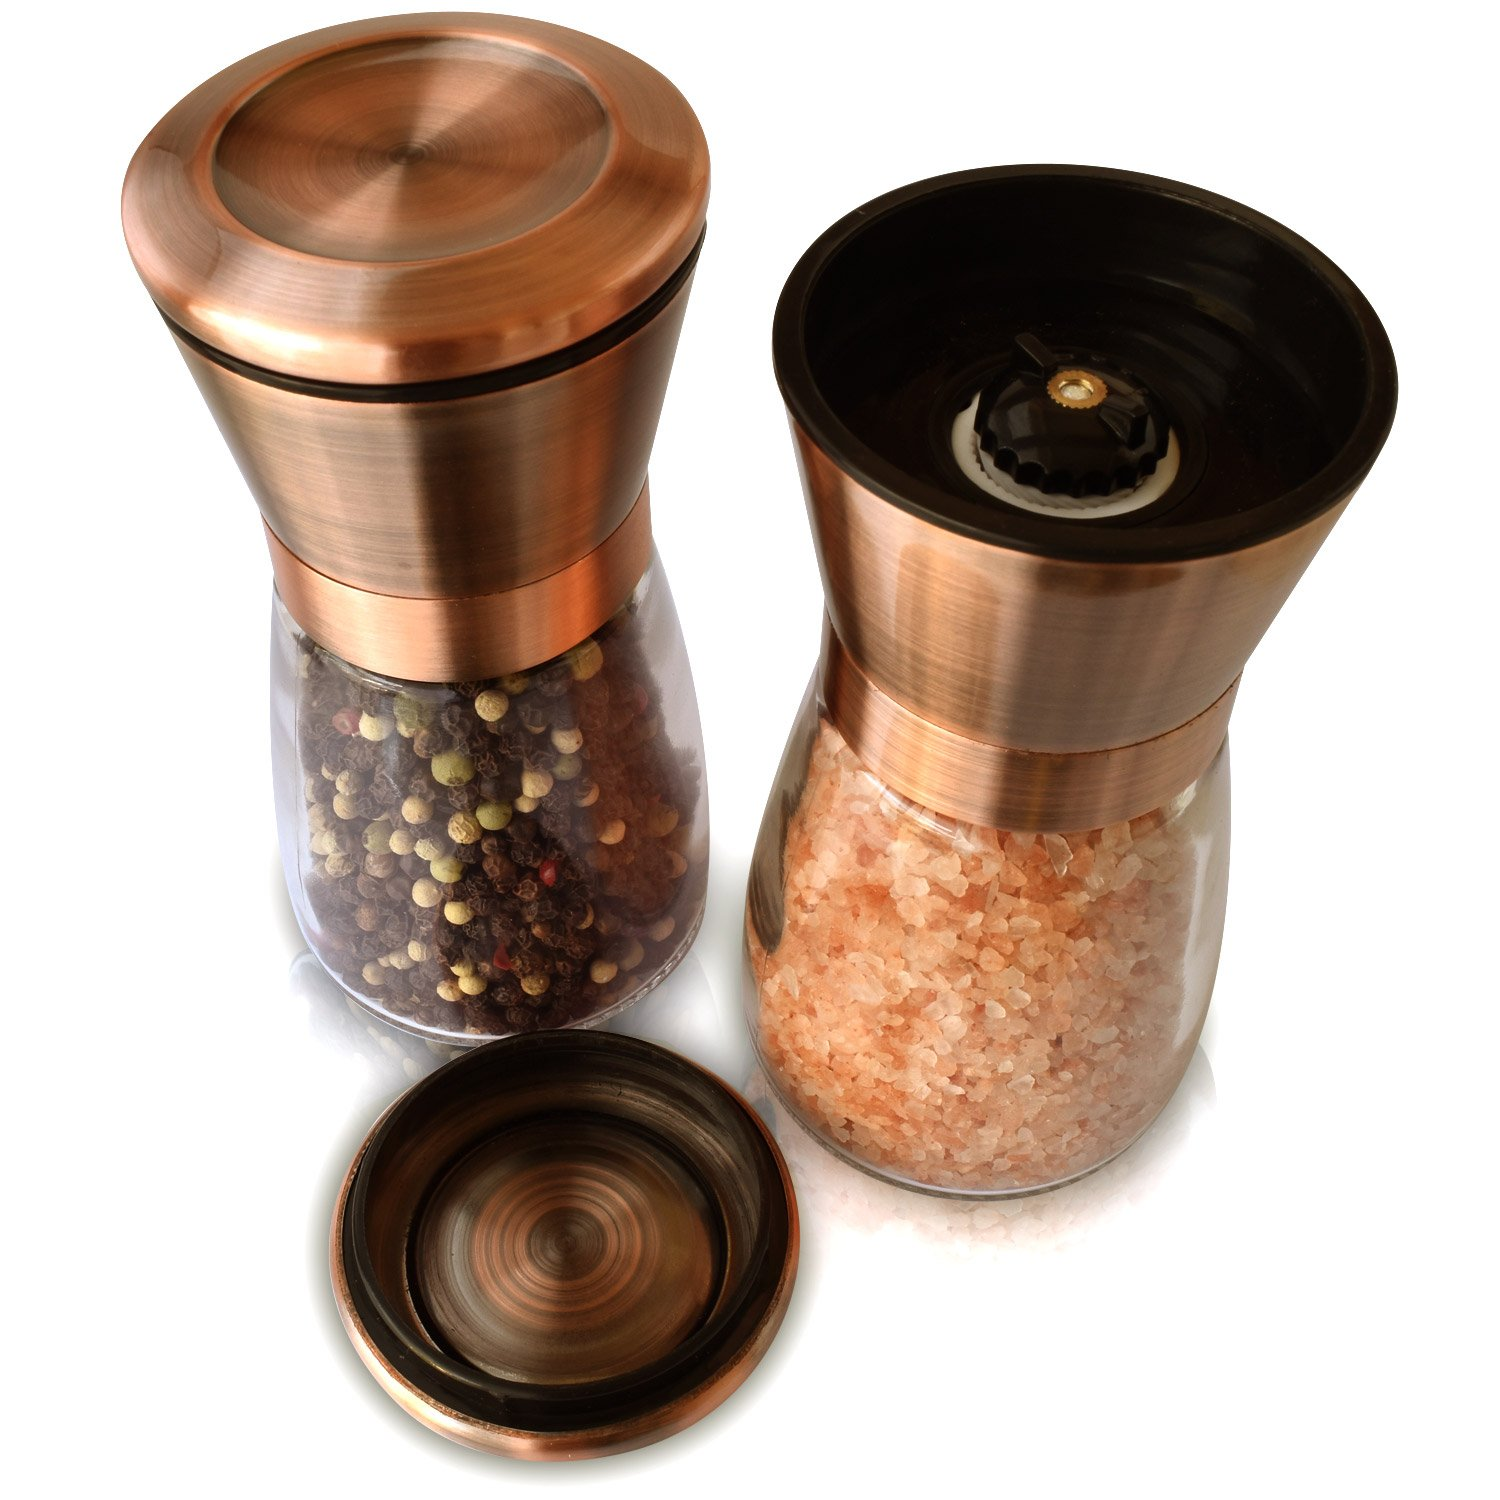 Copper Salt & Pepper Premium Grinder and Shaker - Set of 2 - Rust Proof 18/8 Stainless Steel Lids and Glass Shakers, Grinder/Mill with Adjustable Coarseness | by Premium Home Quality (6oz) by Premium Home Quality